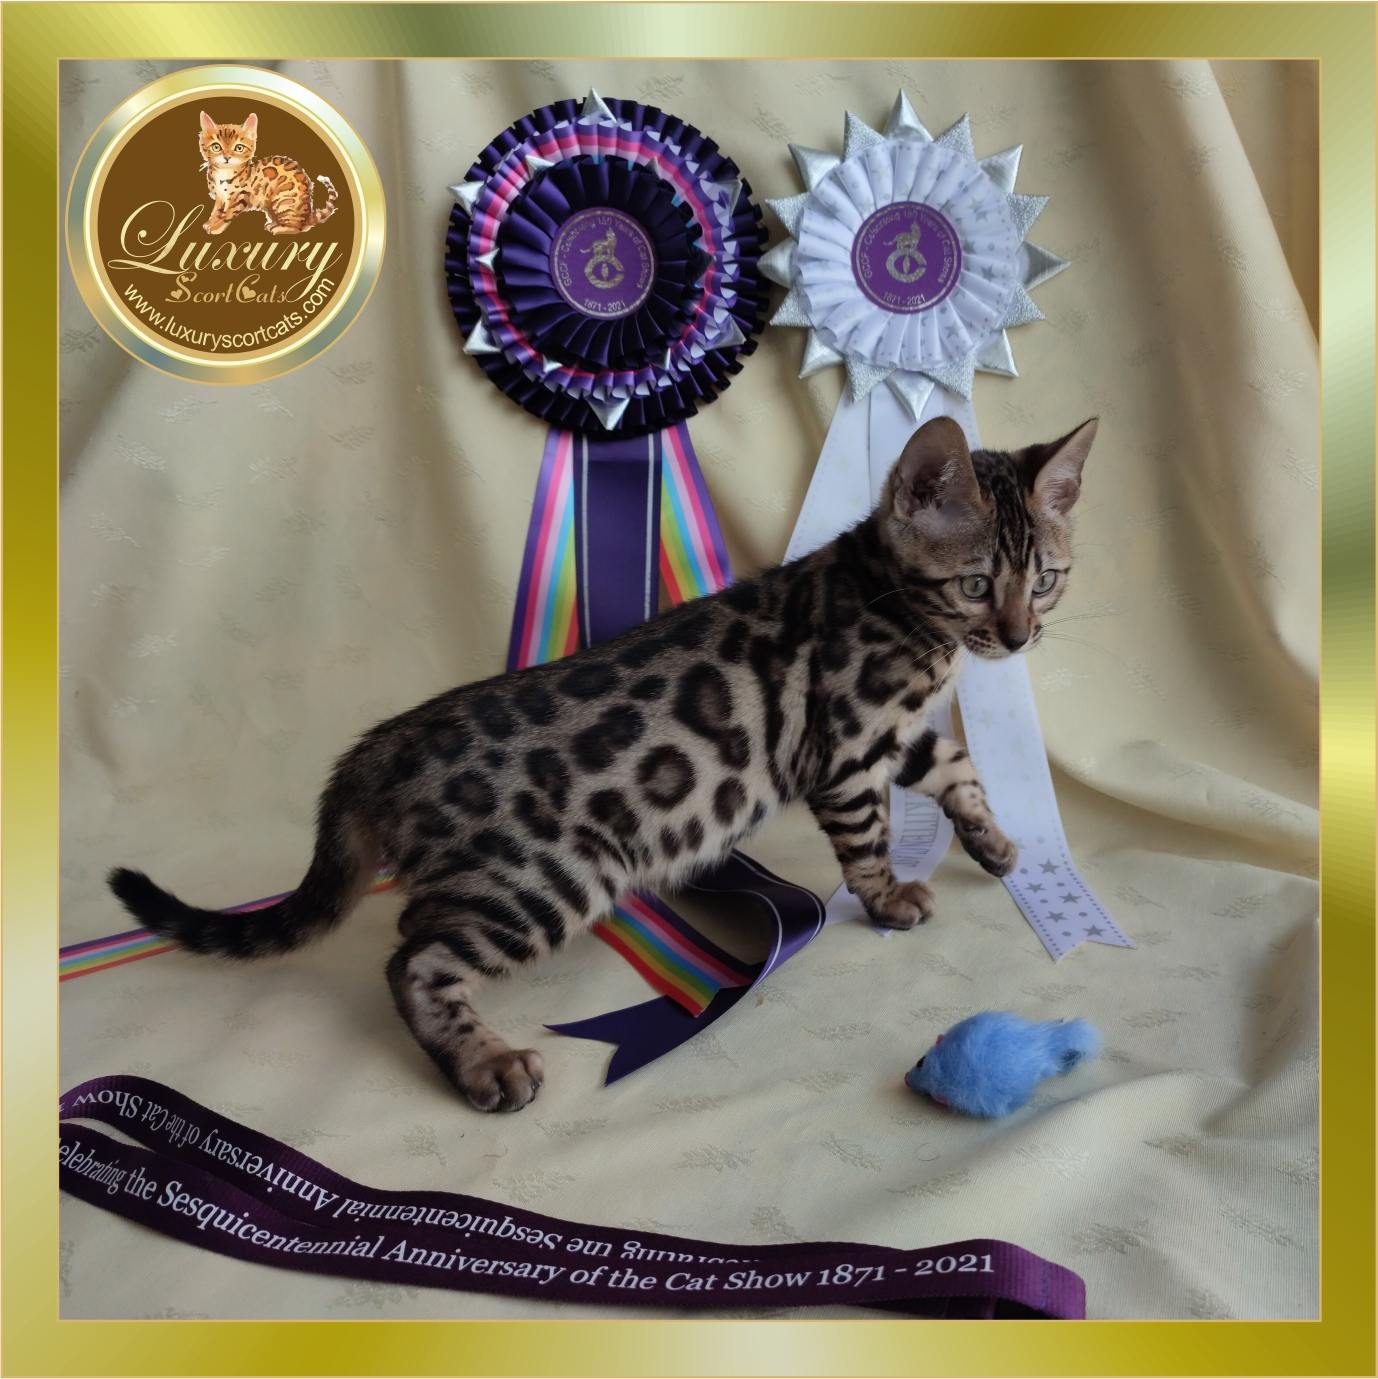 bengal chaton authentique, race bengal standard, chat bengal authentique, pedigree, acheter chat bengal, chatterie bengal, prix du chat bengal, vendre chatons bengal, conseils chat bengal, acheter chatons bengal, prix chatons bengal, chatons bengal, race chat bengal, chatons bengal à vendre, prix chaton bengal, achat chatons bengal, chiots chat bengal, acheter chaton bengal, chat bengal économique